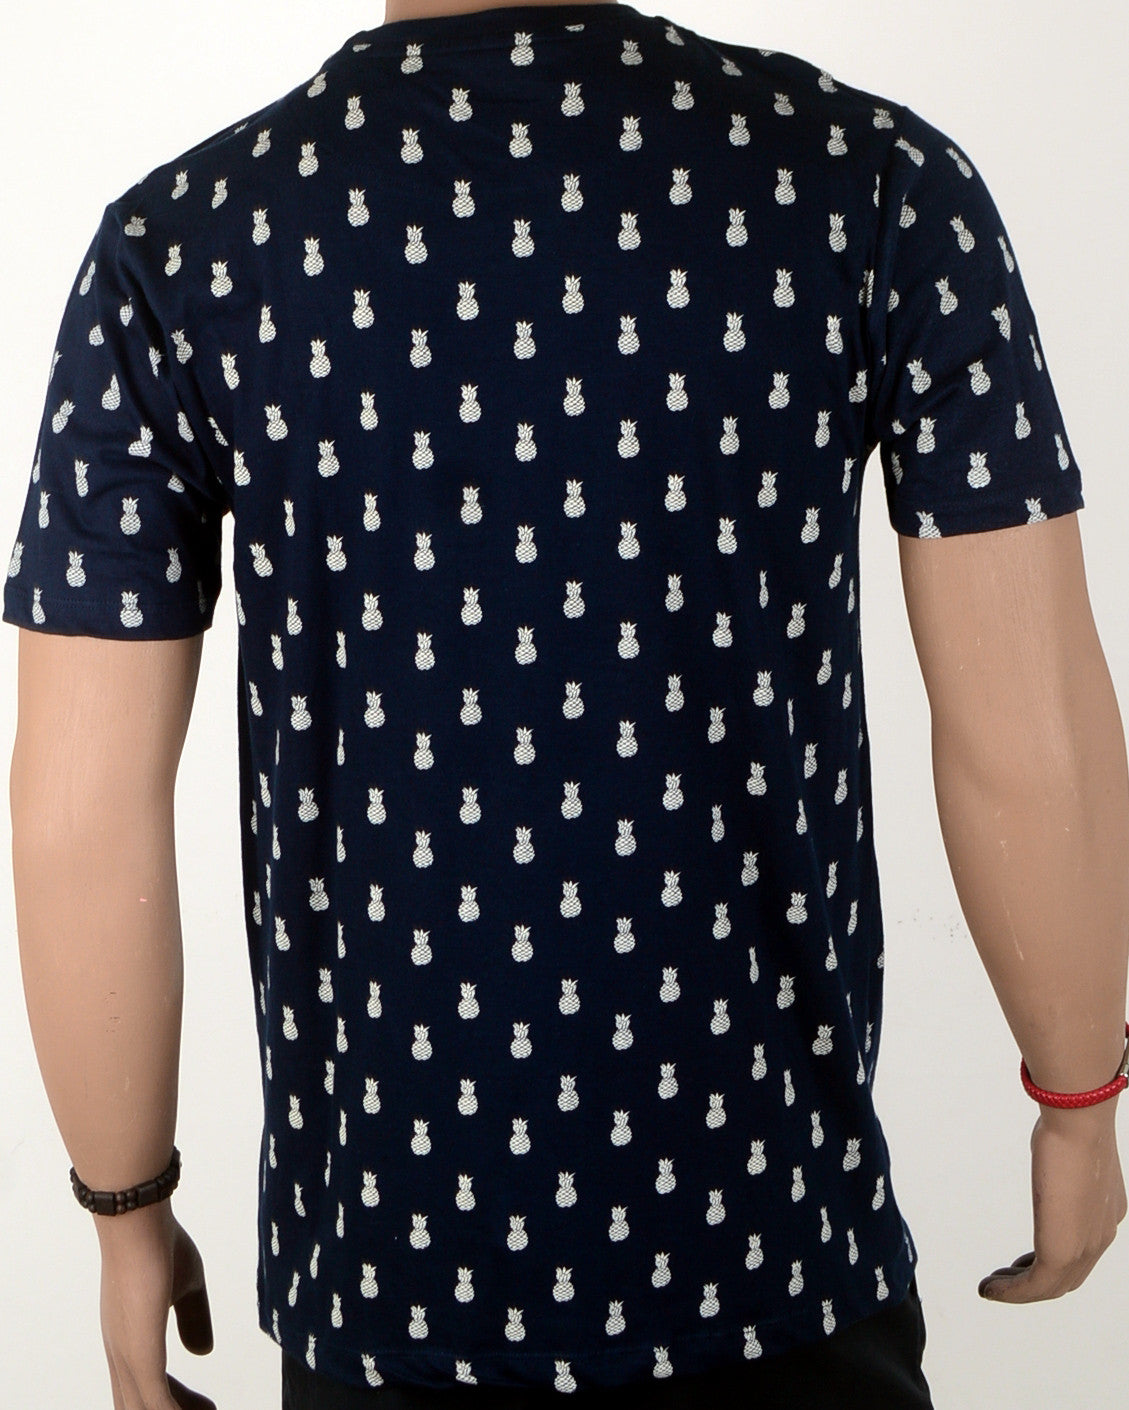 Pineapple Print T-shirt - XL